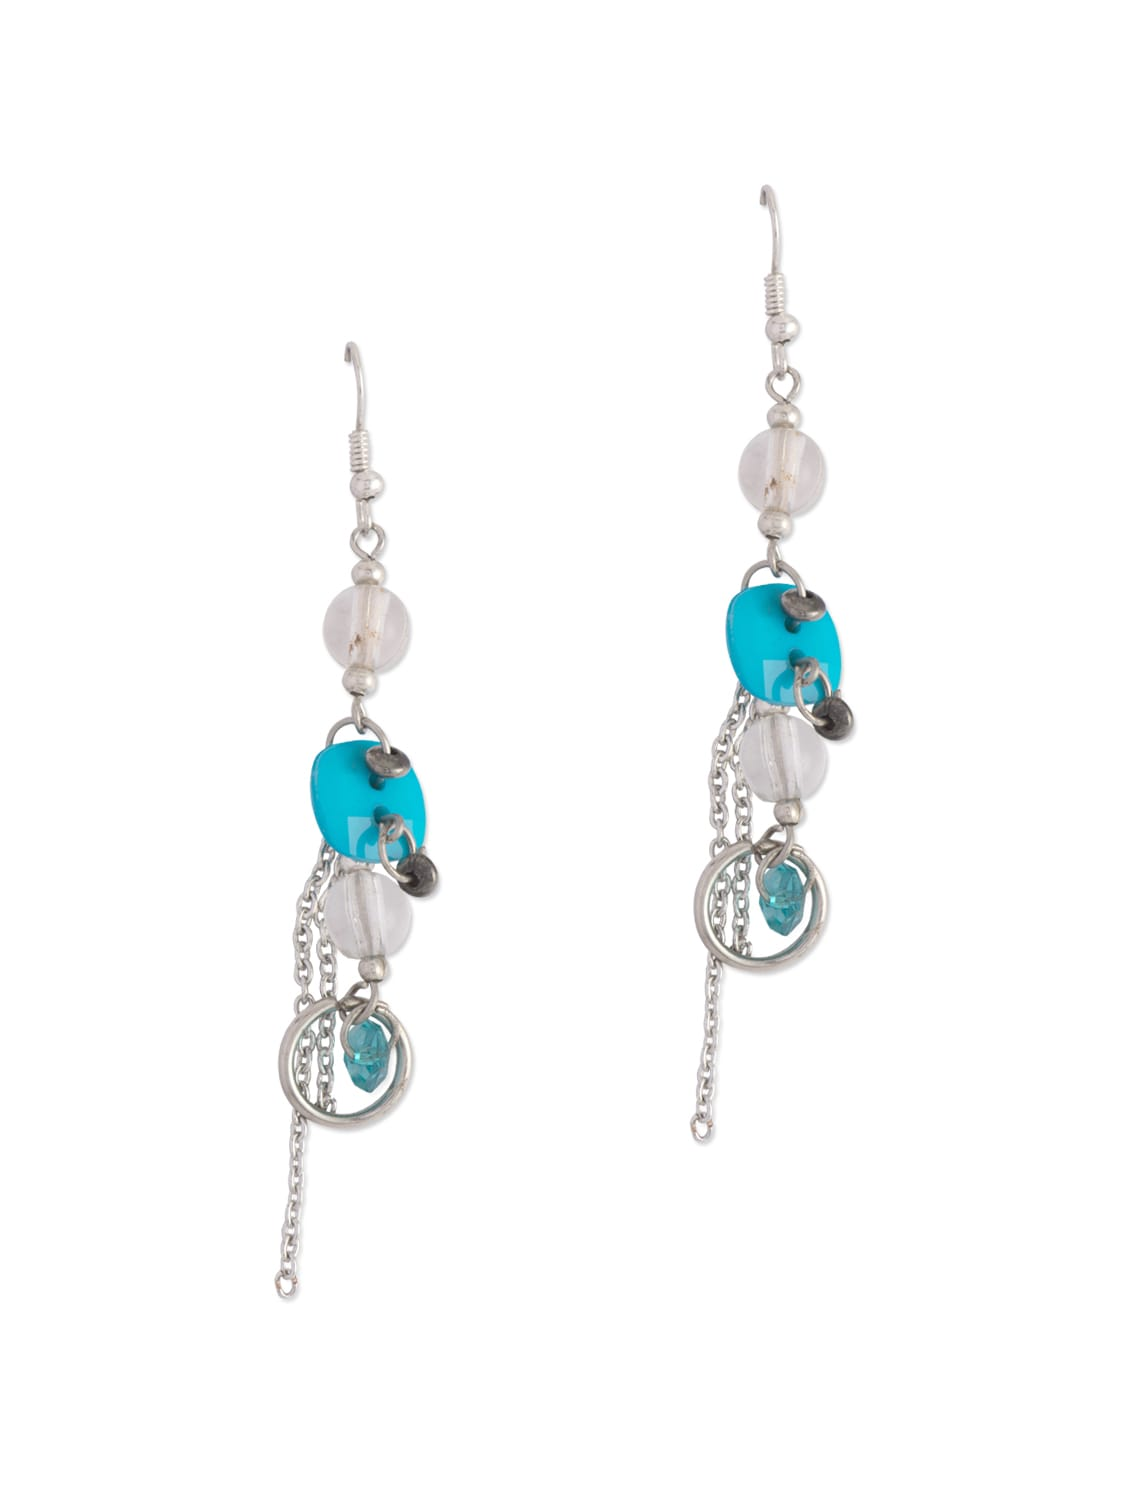 Buttoned Down Earrings - Blend Fashion Accessories